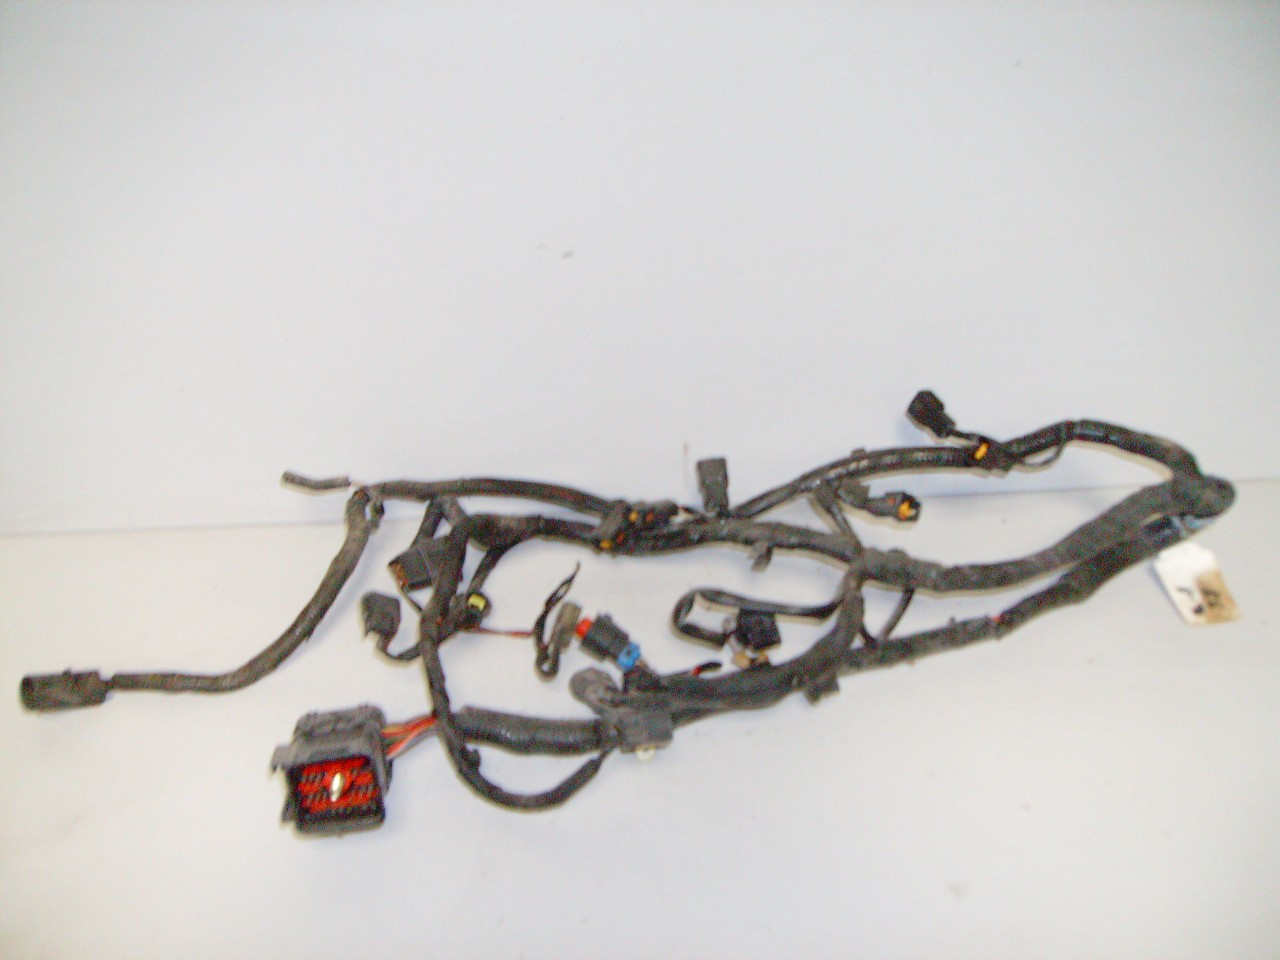 Ford Contour Engine Wiring Harness Smart Wiring Diagrams \u2022 2003 Ford  Explorer Wiring Harness 1996 Ford Contour Wiring Harness